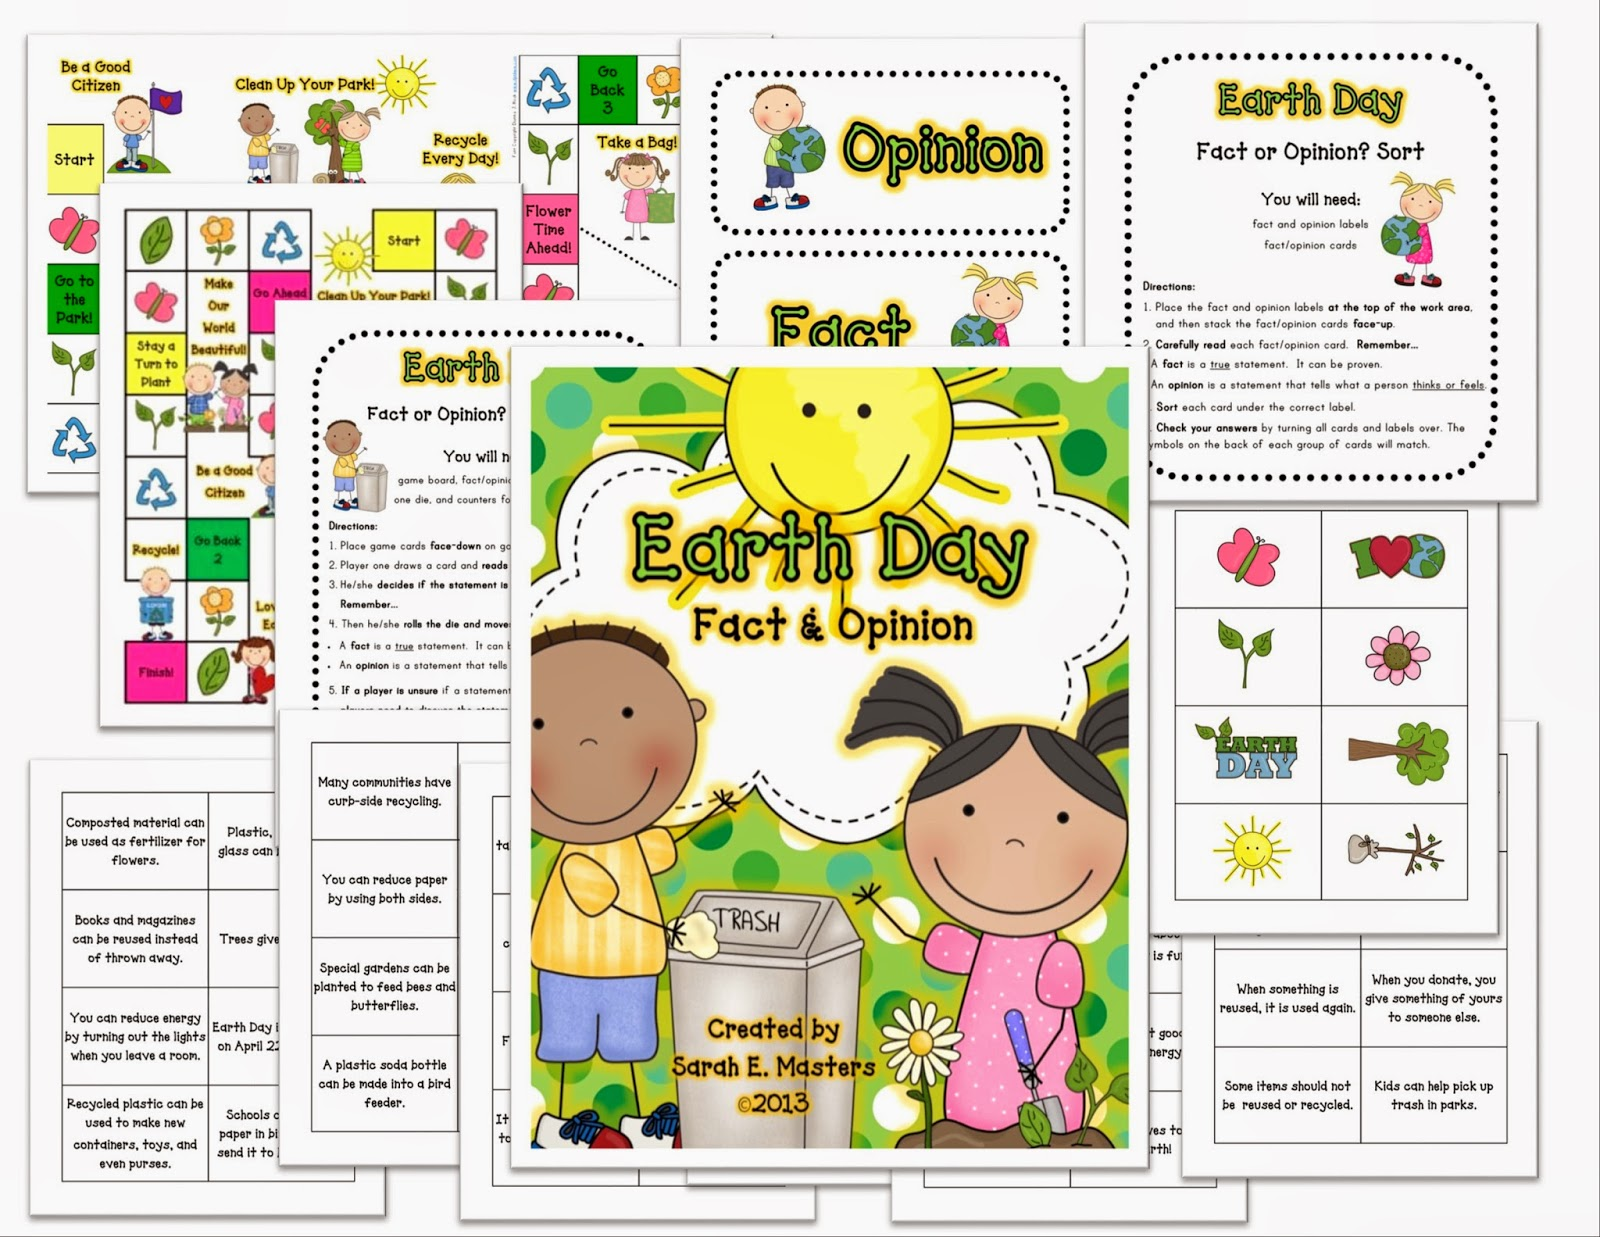 http://www.teacherspayteachers.com/Product/Earth-Day-Fact-Opinion-Game-and-Sorting-Learning-Center-1174846